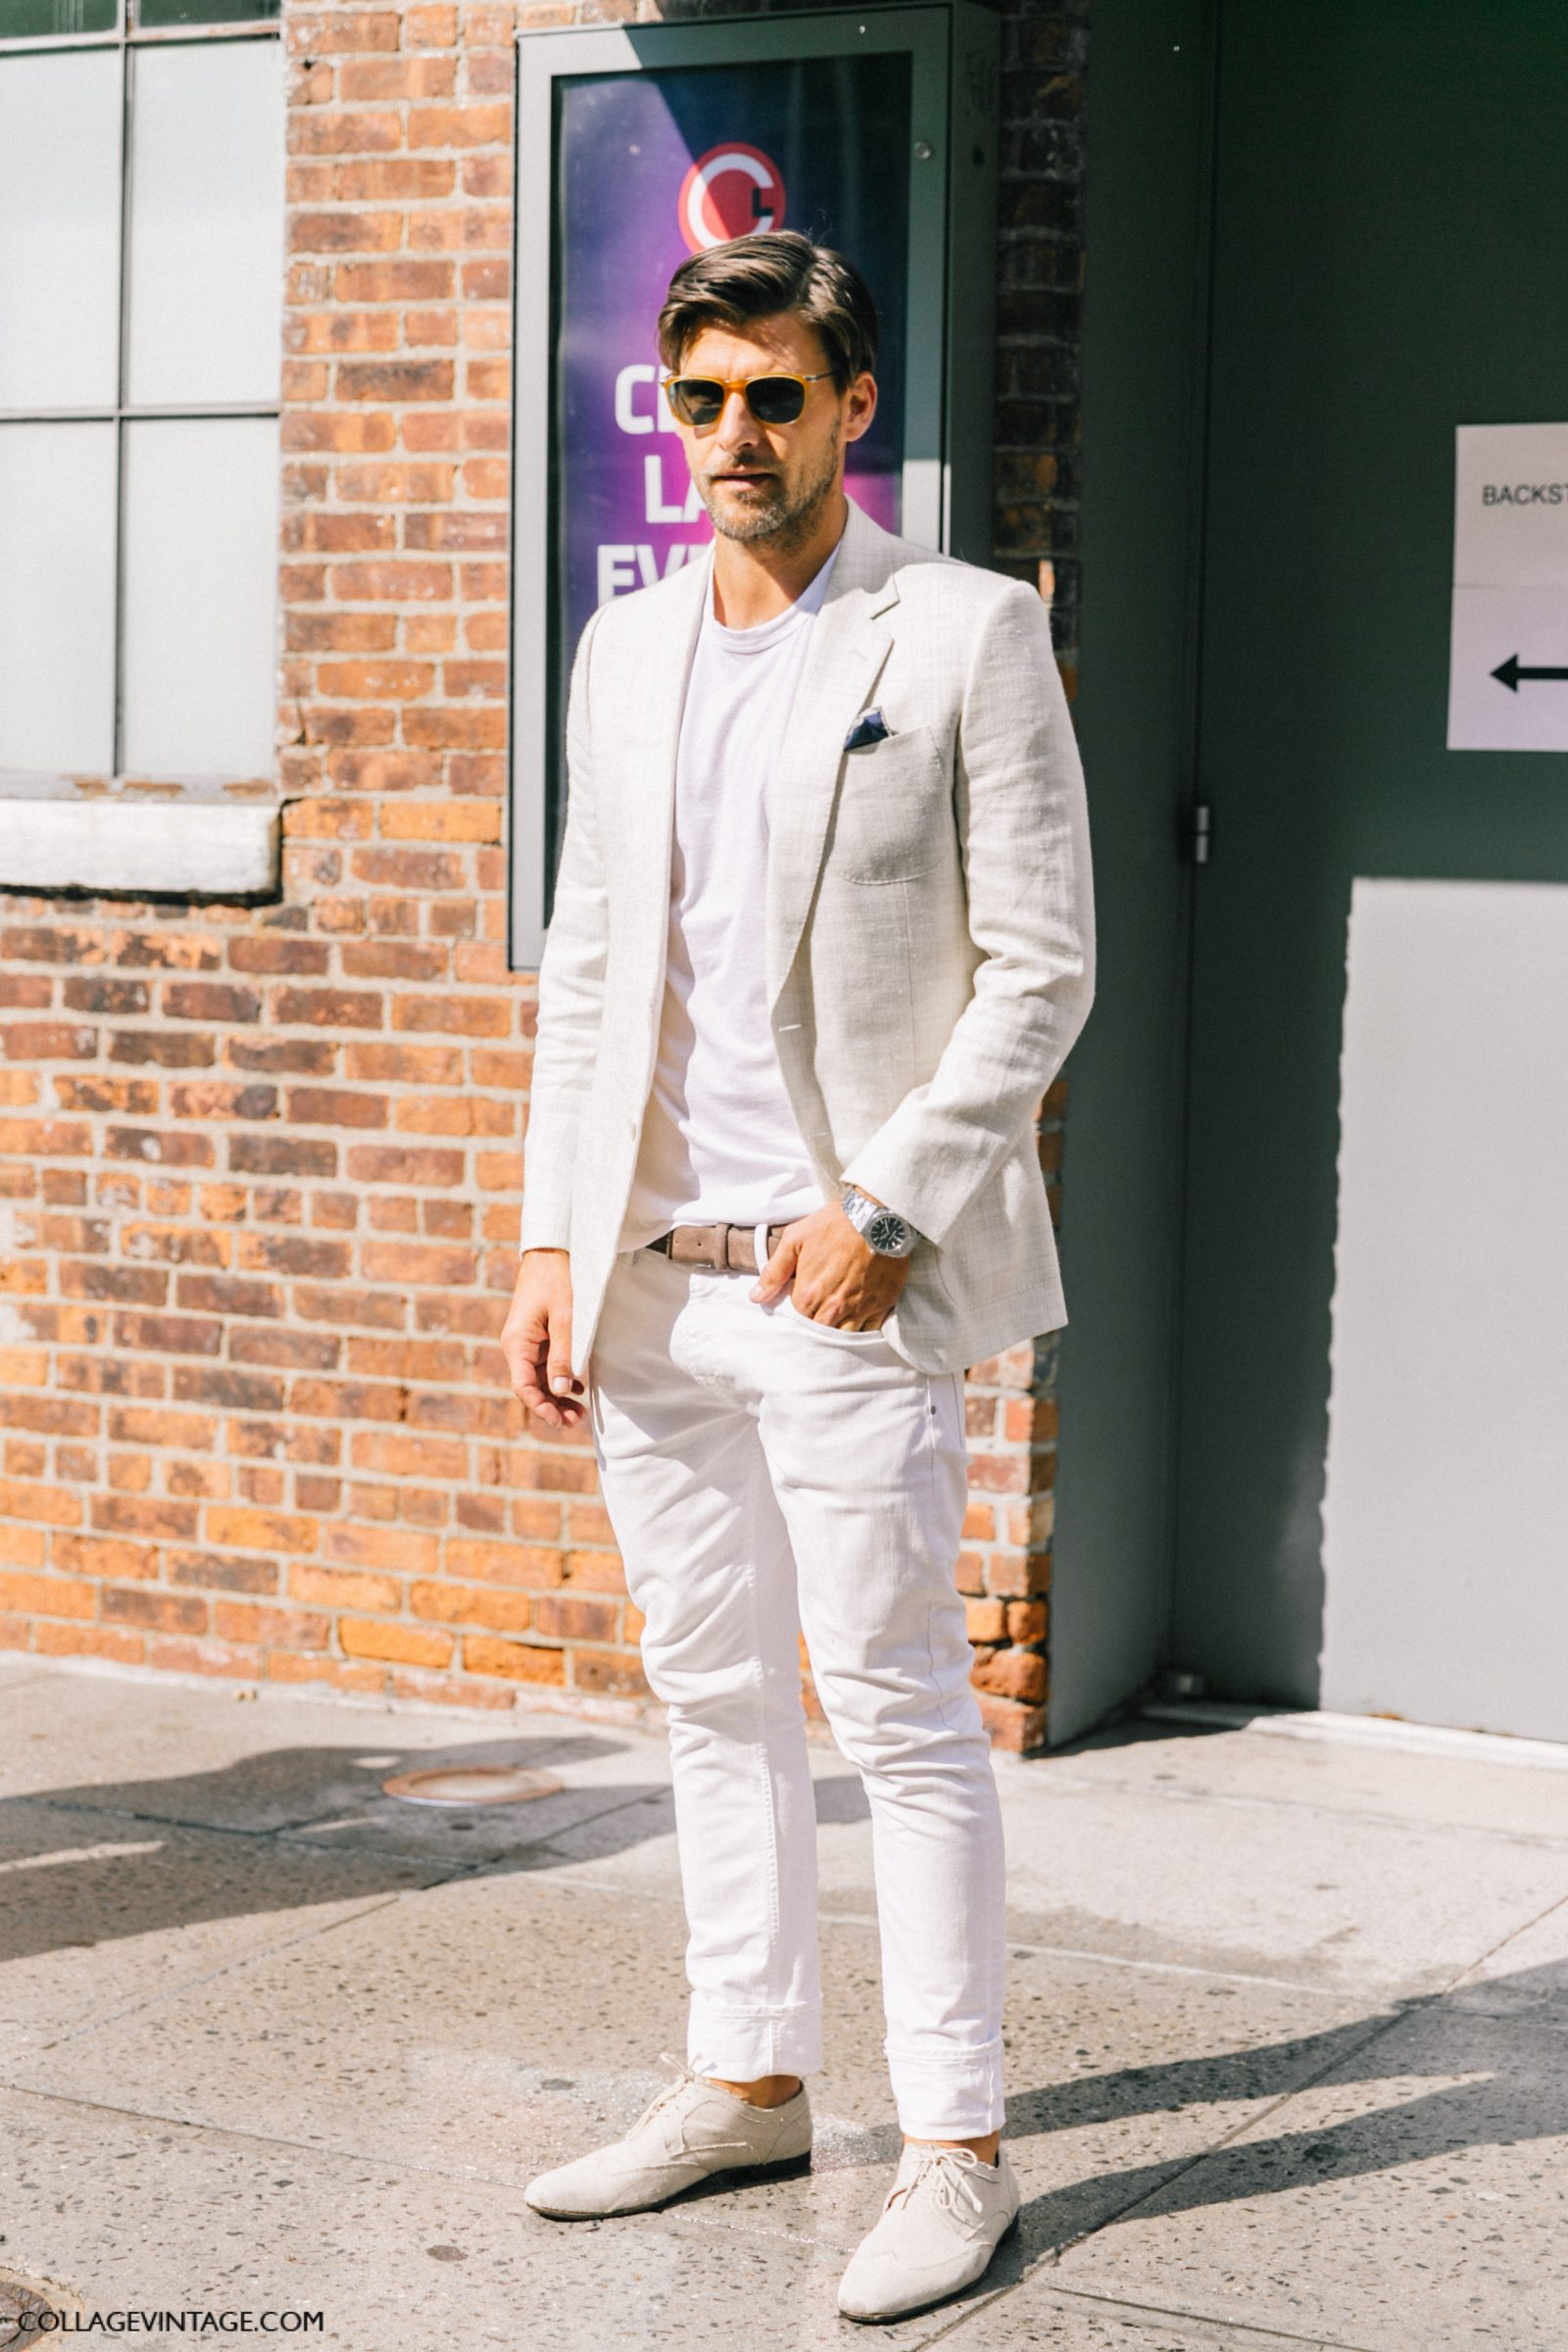 nyfw-new_york_fashion_week_ss17-street_style-outfits-collage_vintage-51